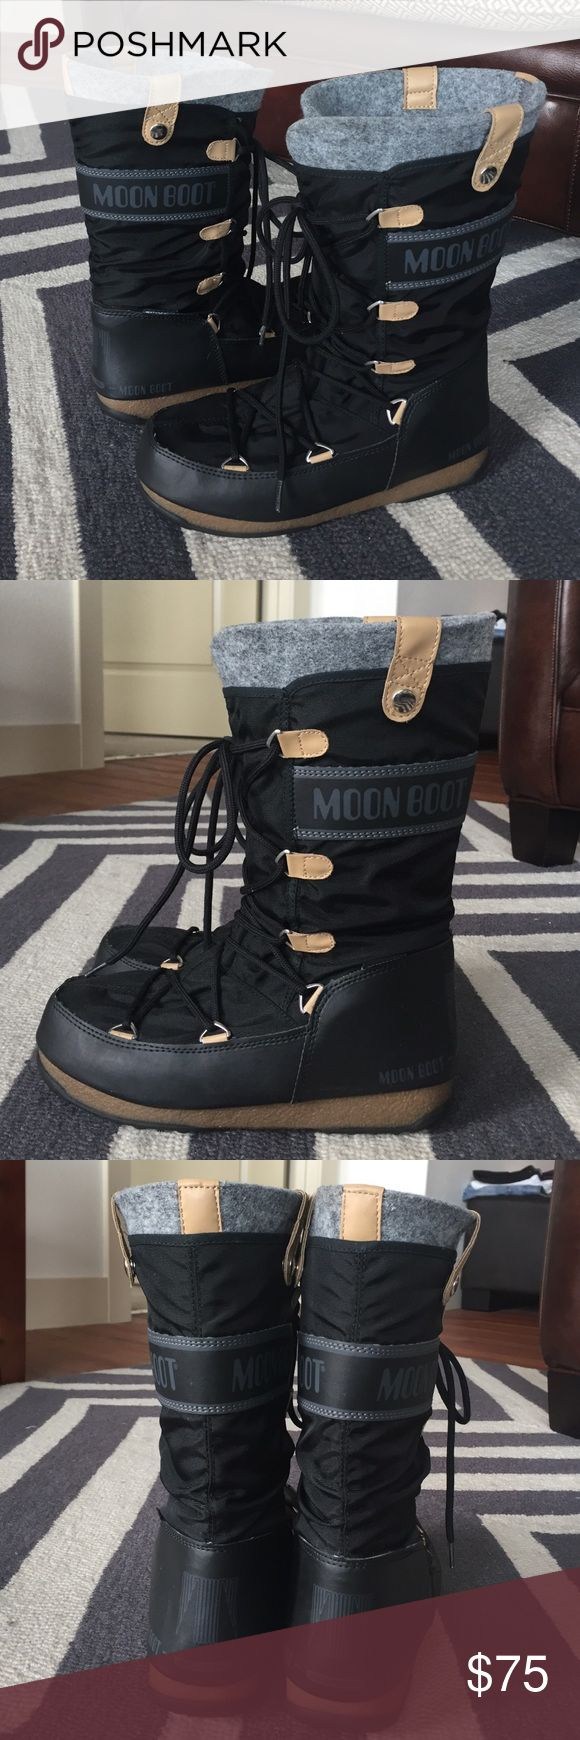 """NWOT Tecnica Moon Boot Tecnica Moon Boot Monaco Felt. Waterproof nylon and synthetic upper. Easy lace-up design. Removable felt lining. Cushioned footbed. Rubber outsole. Circumference: 14.5"""". Shaft: 11.25"""". Super comfortable! A really sleek and trendy look for winter! Just worn around house, never outside. NWOT. Moon Boot Shoes Winter & Rain Boots"""